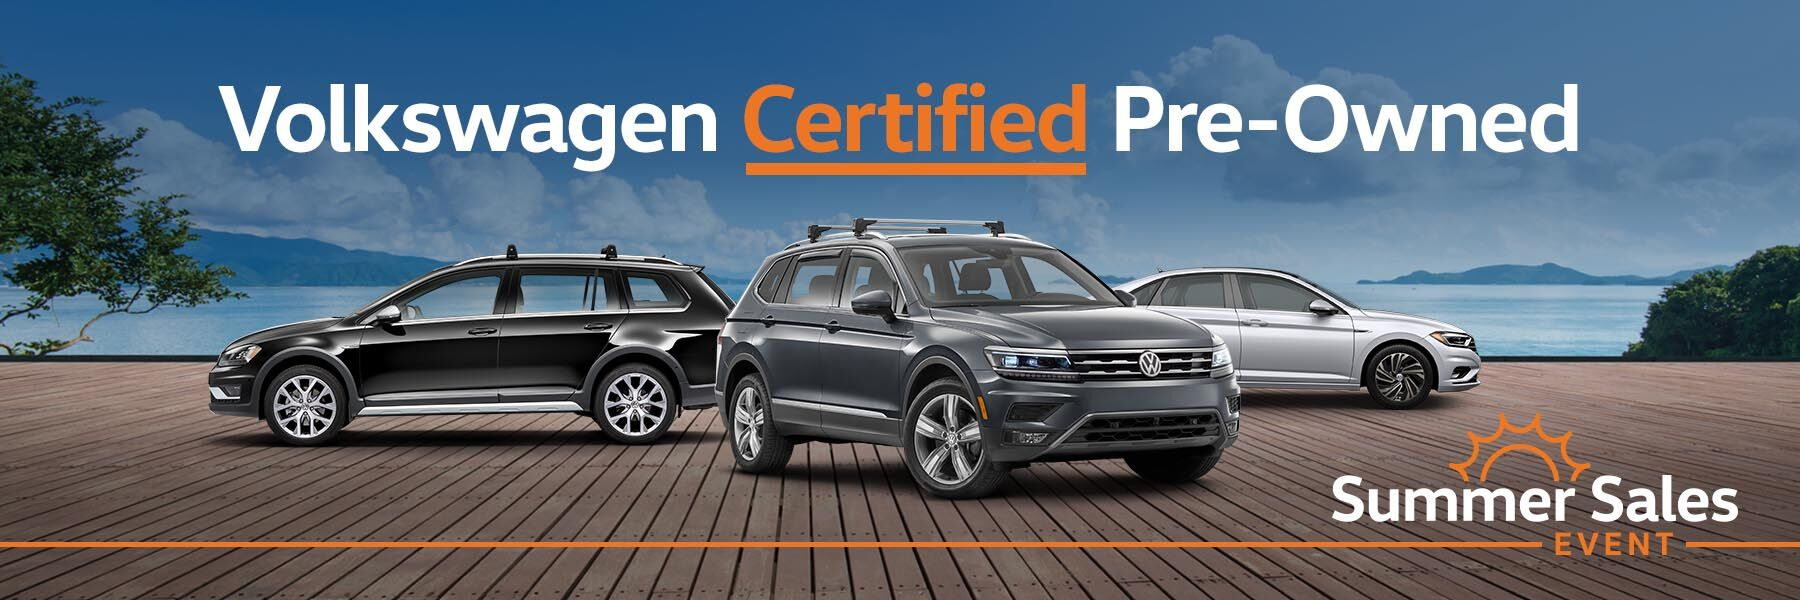 Volkswagen Certified Pre-Owned in Kihei, HI